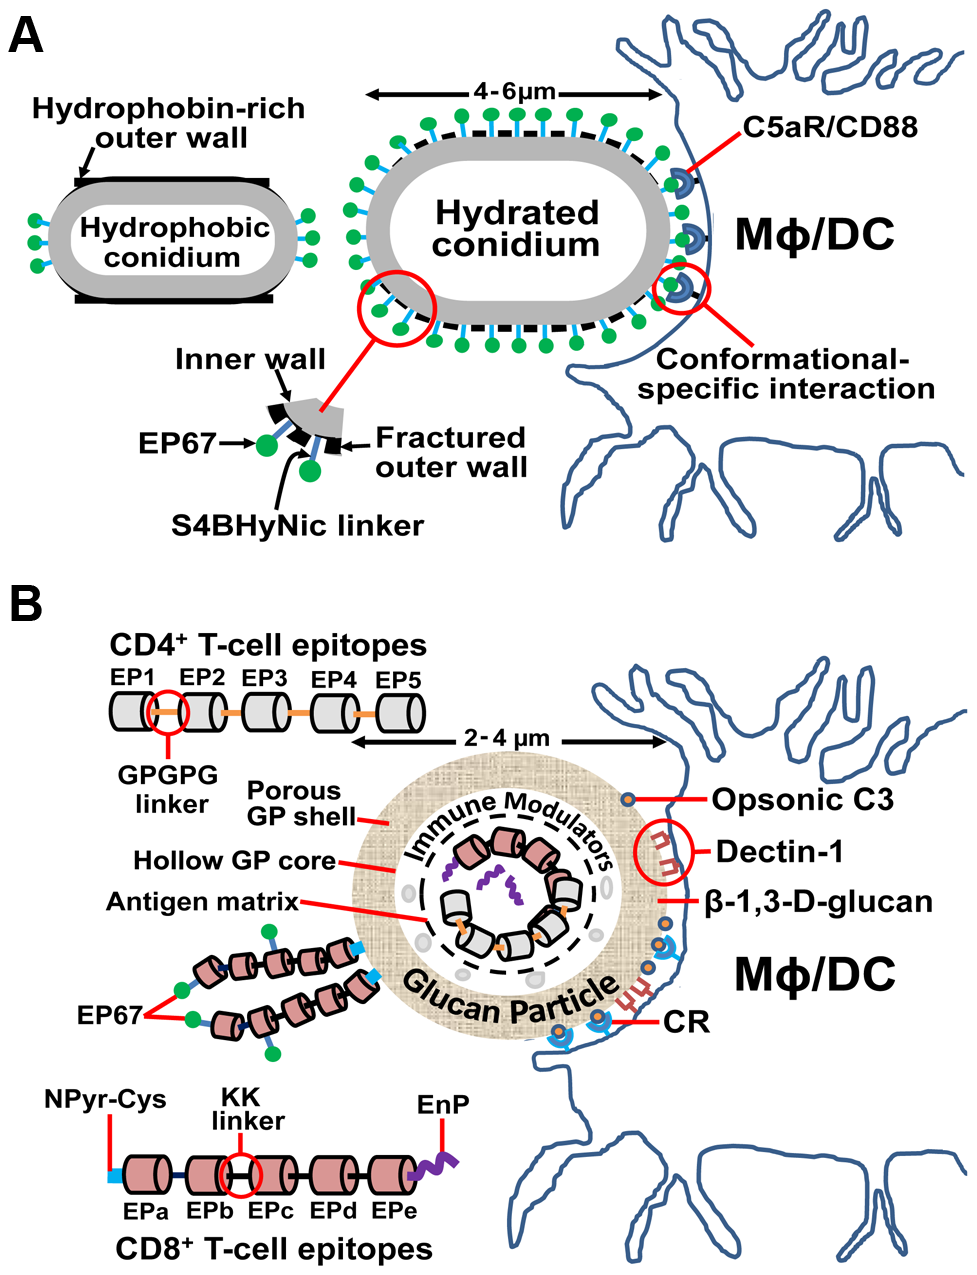 Novel adjuvant and vaccine delivery system for enhancement of protective immunity to coccidioidomycosis. (A) An agonist of human complement fragment C5a (EP67) bound to live cells of an attenuated vaccine strain of <i>Coccidioides</i> enhances T-cell immunity while downregulating inflammatory pathology.